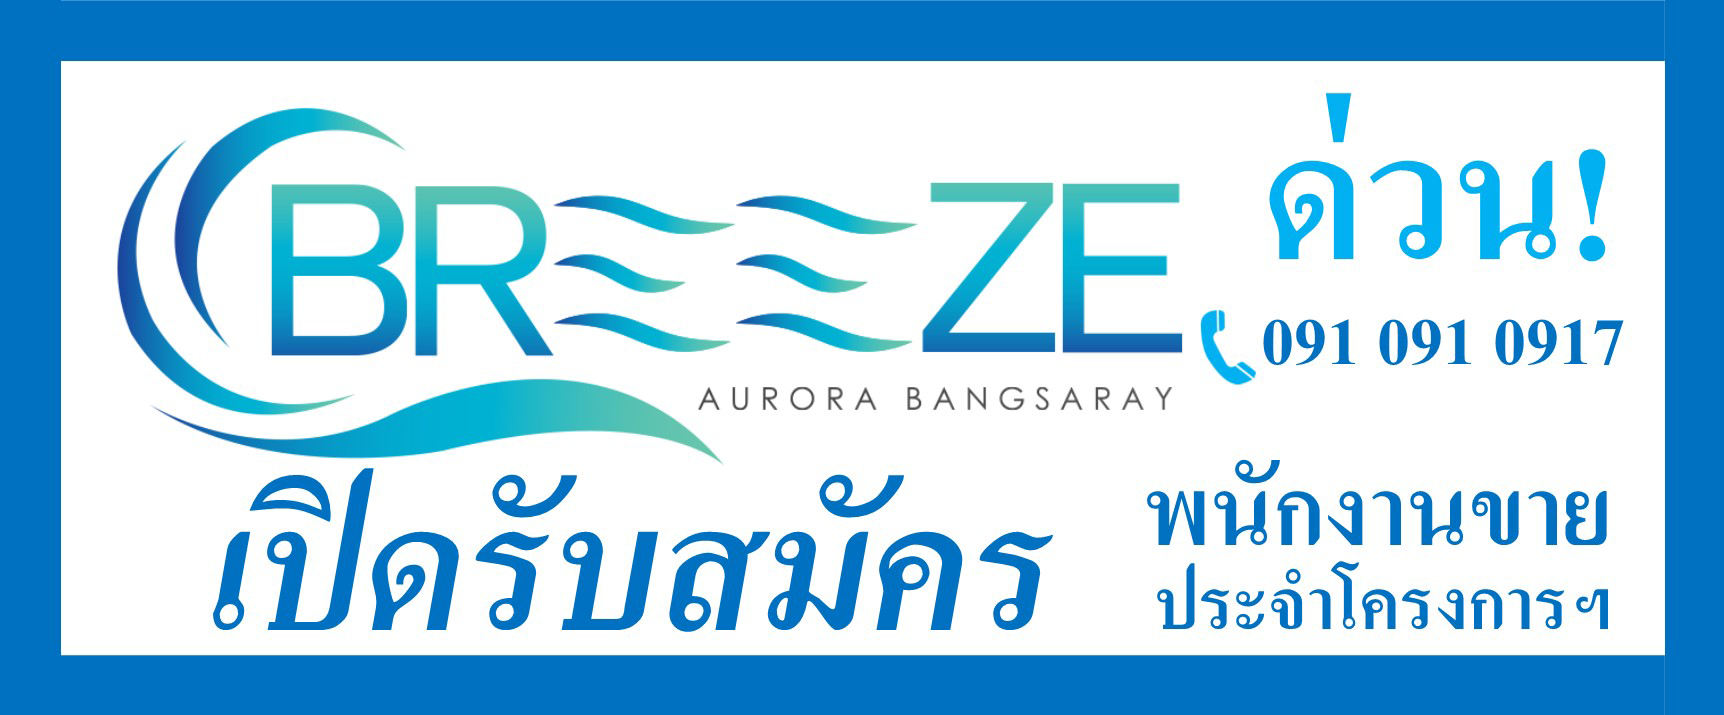 The Breeze Condominium Bangsaray